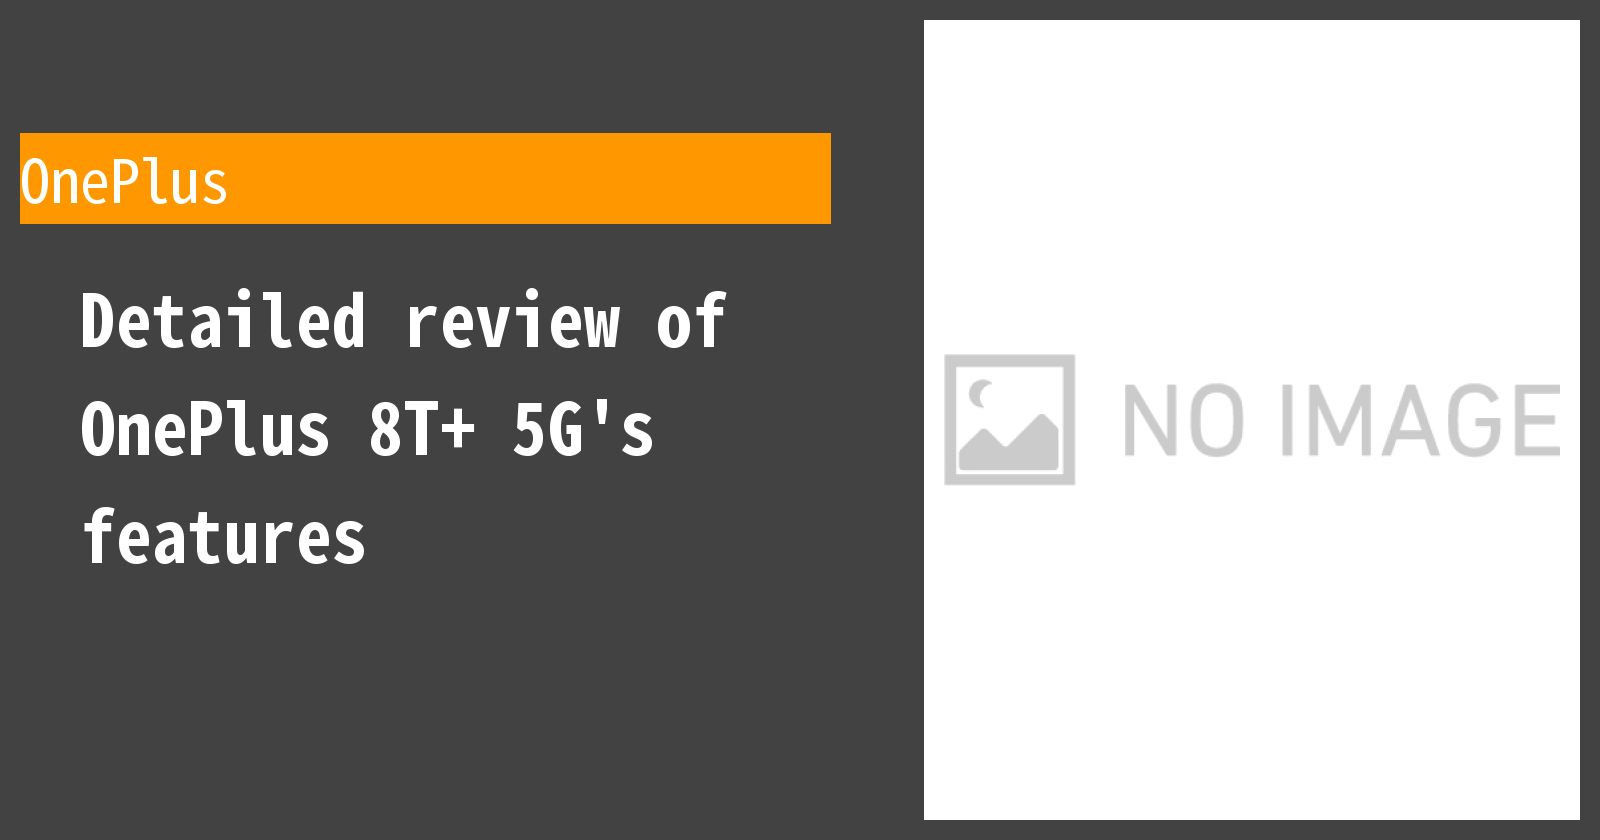 Detailed review of OnePlus 8T+ 5G's features